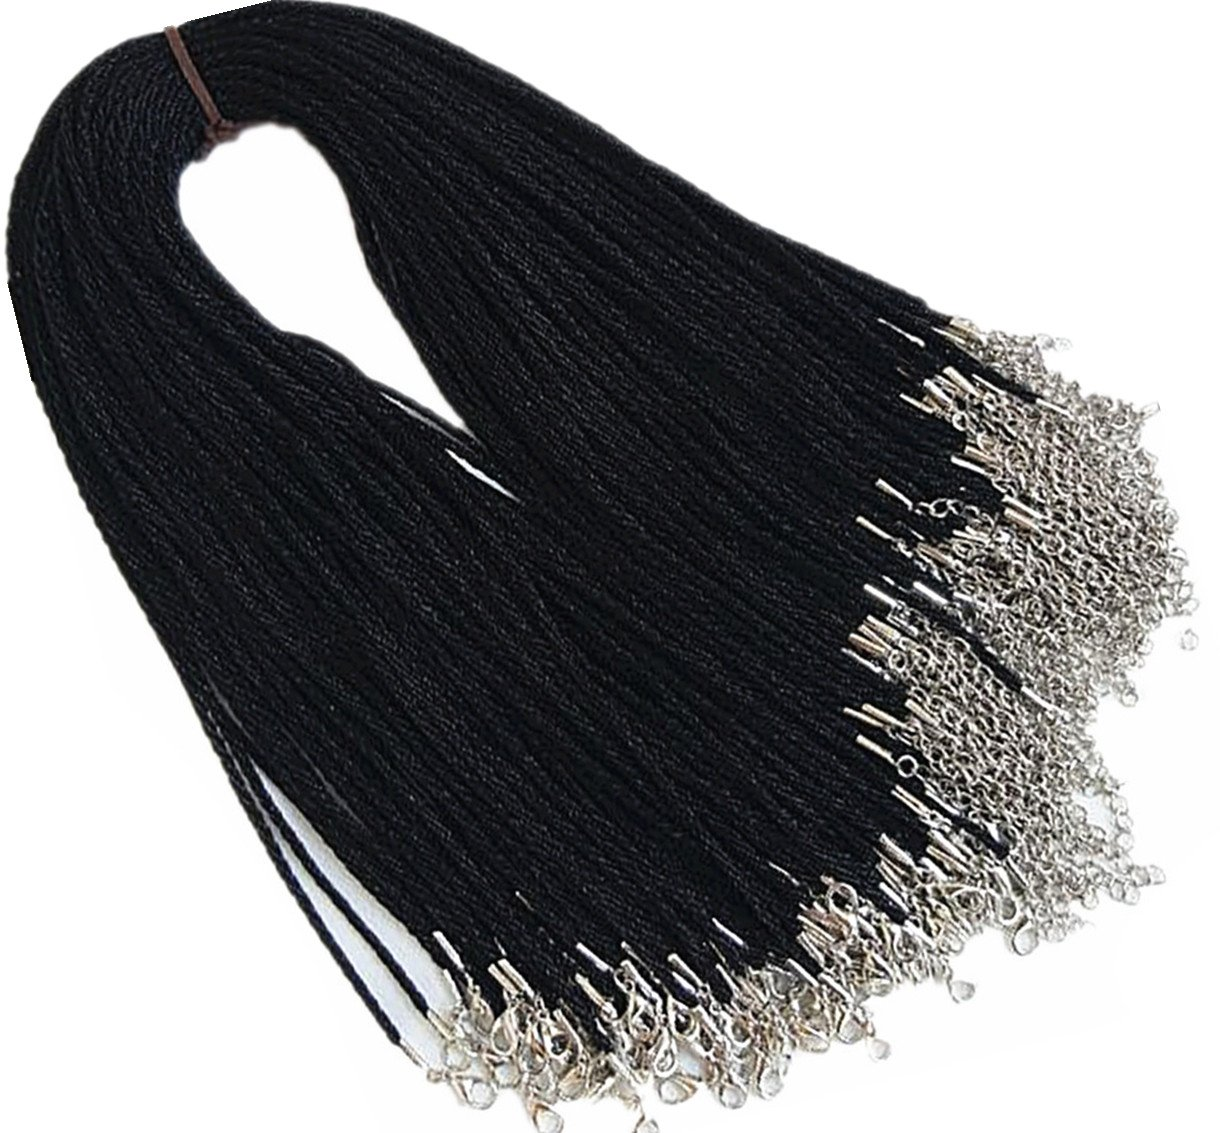 24'' Black Satin Silk Necklace Cord Chain Cotton Rope with Lobster Claw Clasp 2.0mm 100Pcs by Gozillon